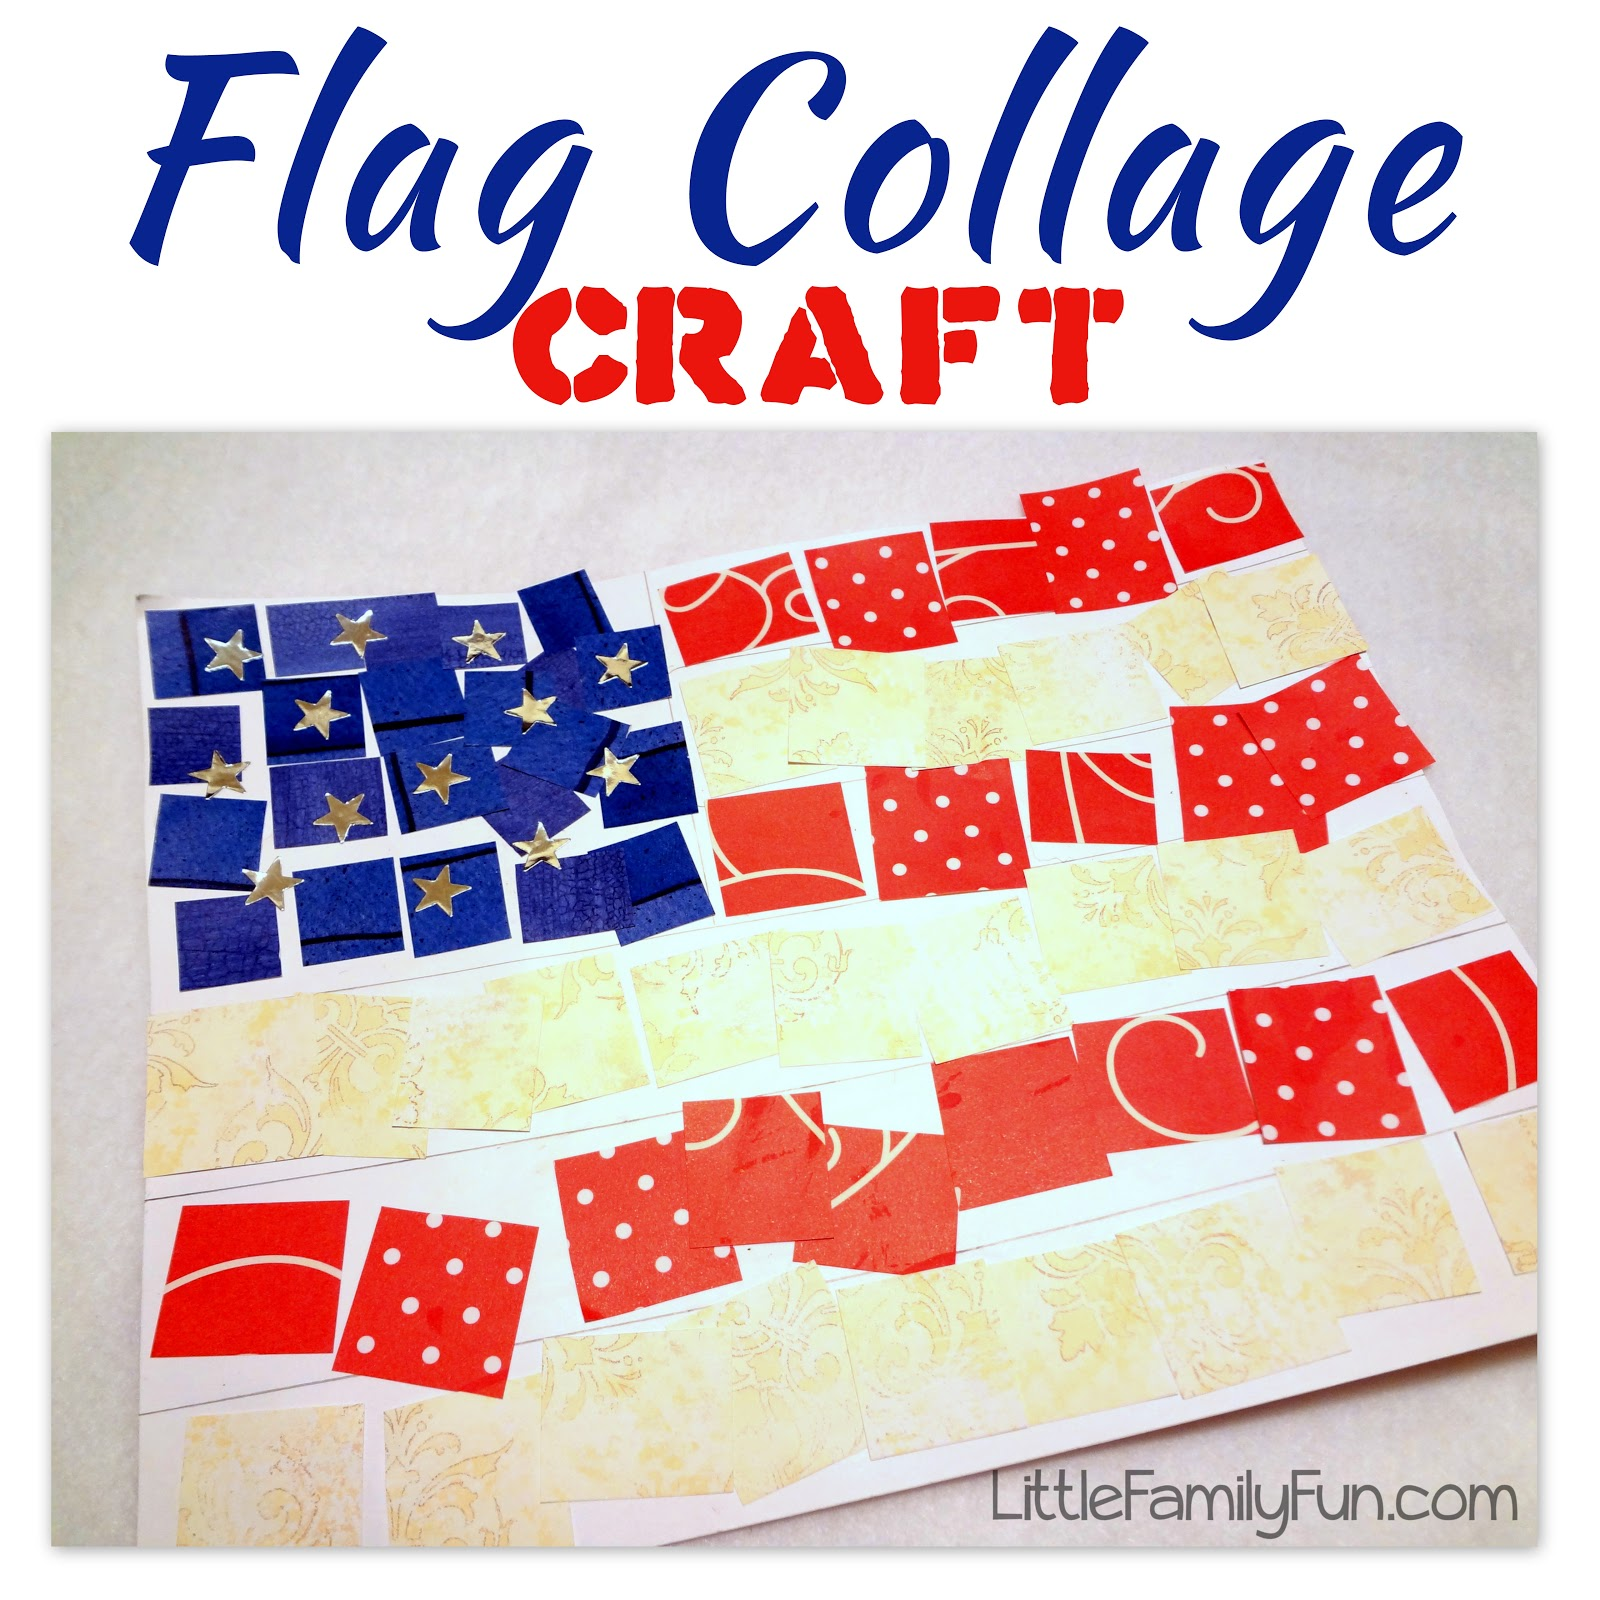 American Flag Collage Craft